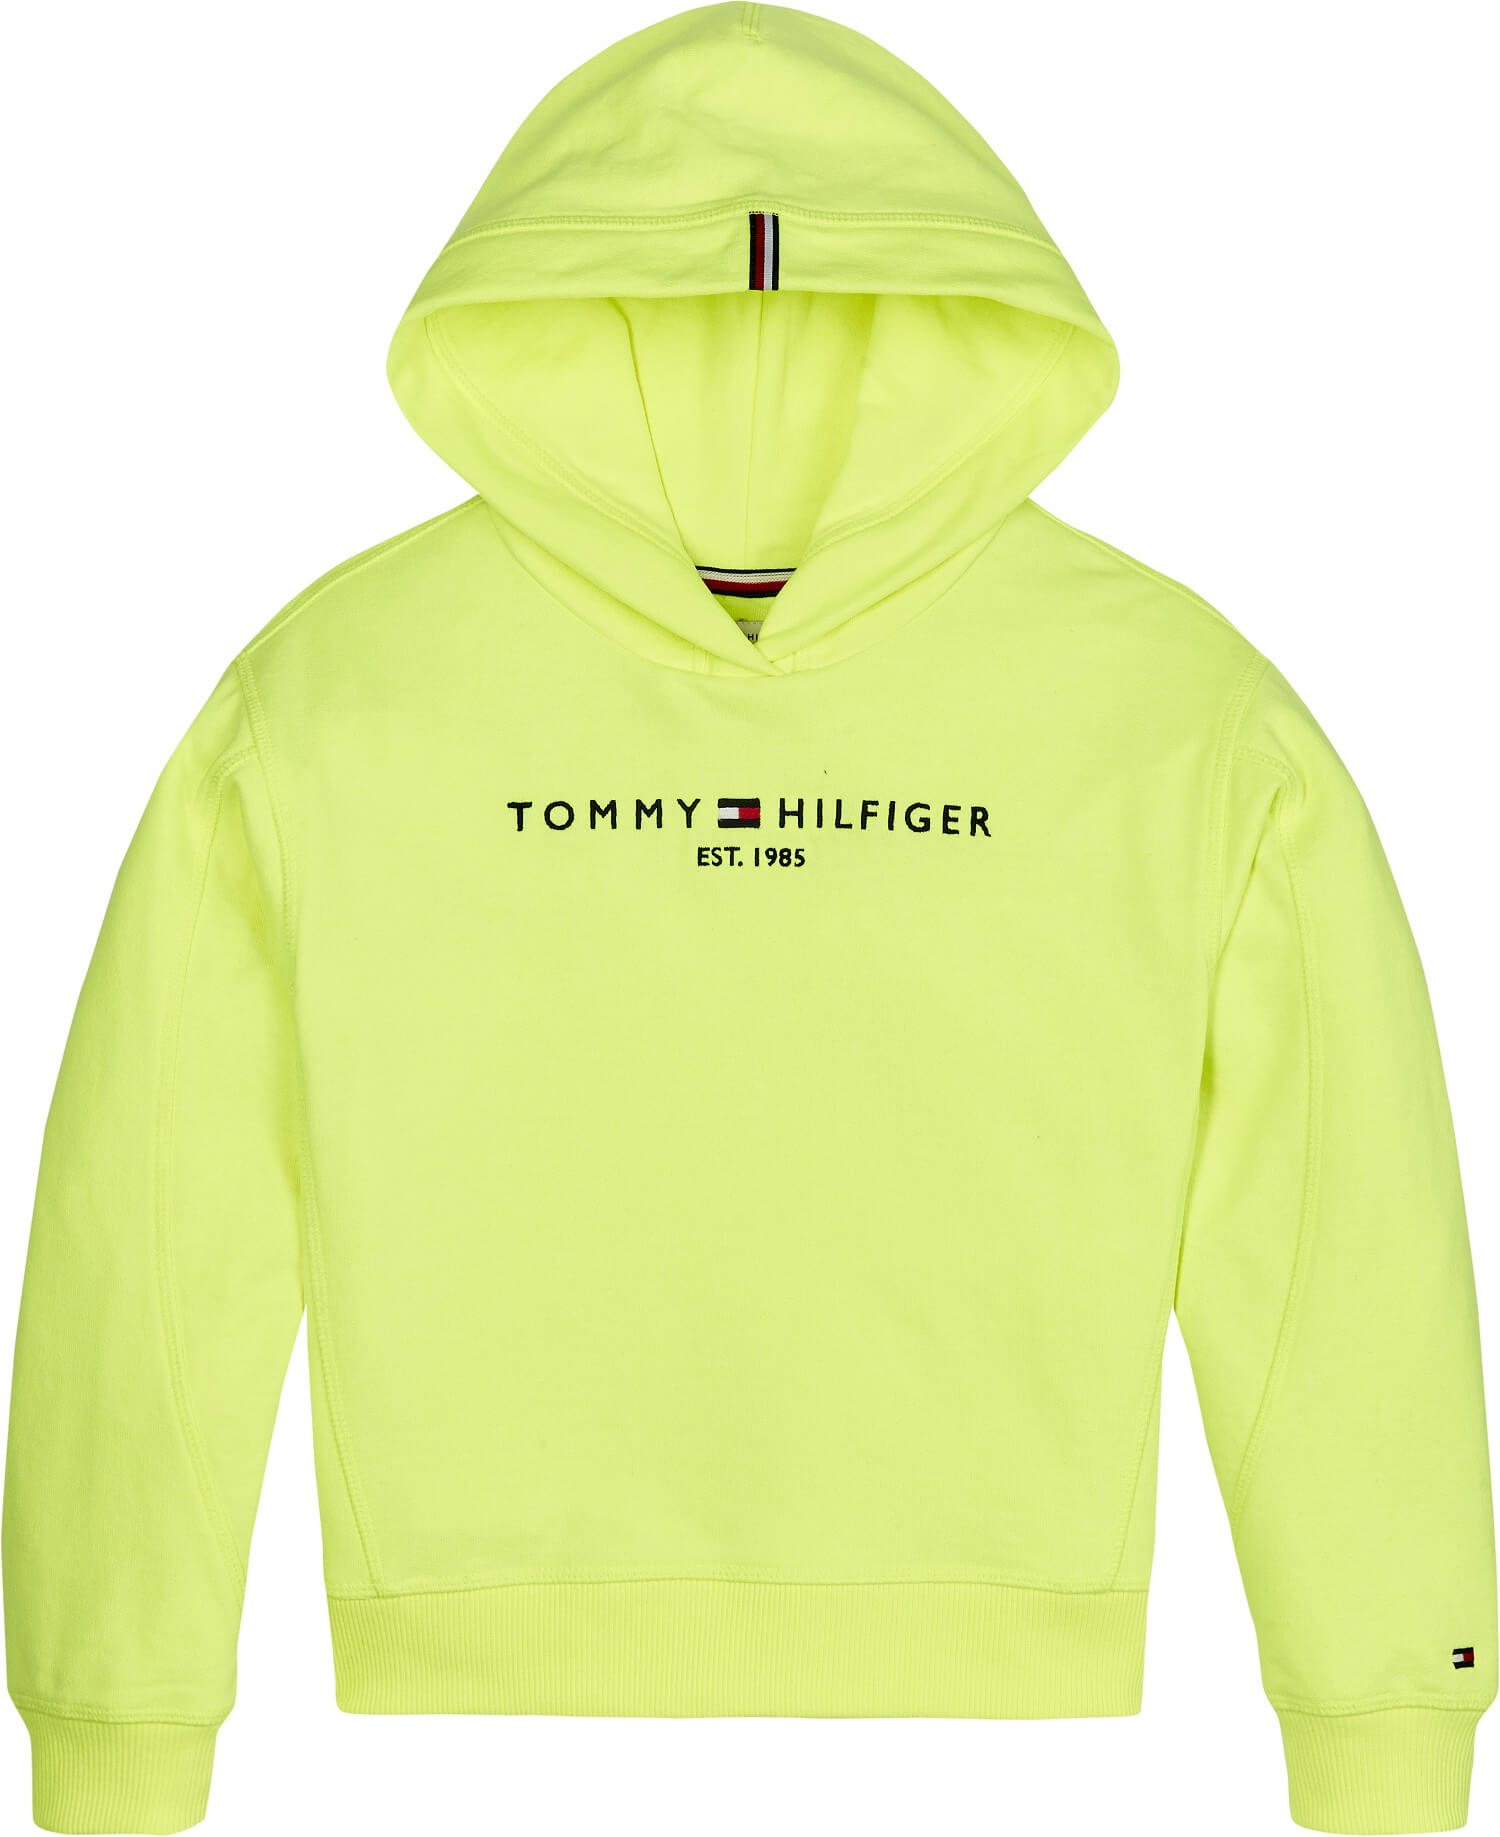 Tommy Hilfiger Childrenswear Collegehuppari, Essential Hooded Sweatshirt Keltainen